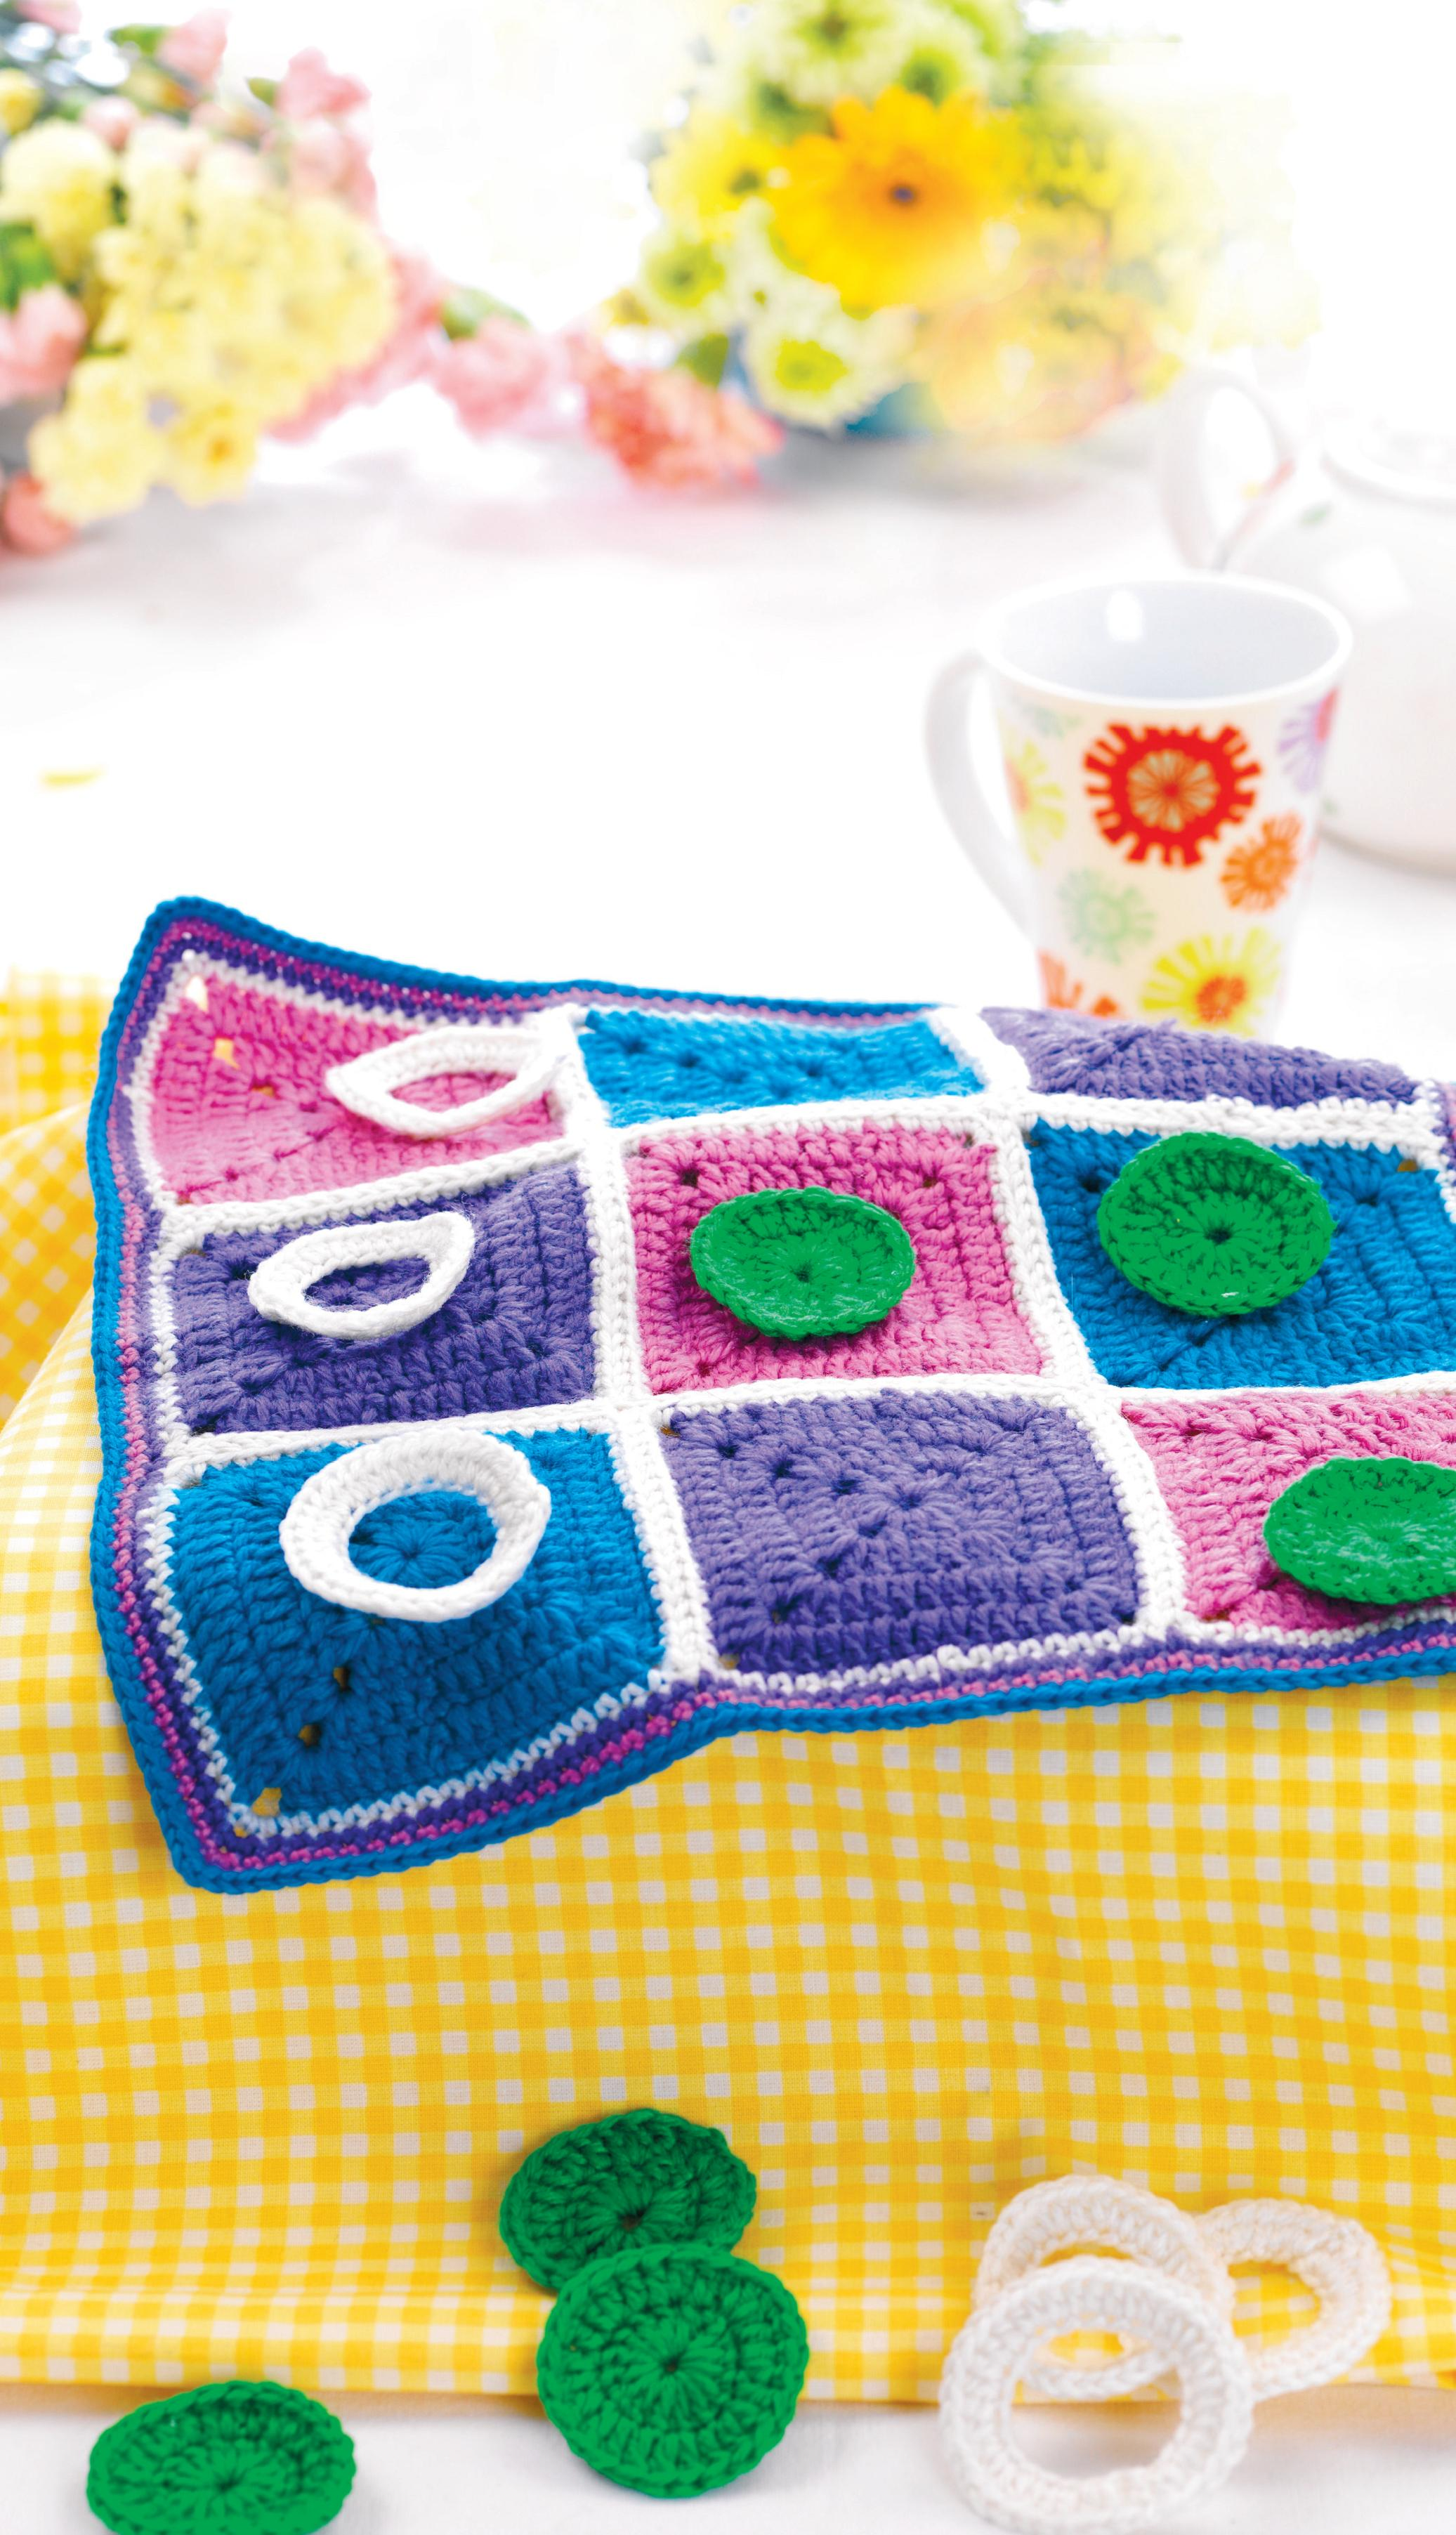 Best Free Crochet Patterns Online : Crochet tic-tac-toe game Crochet Pattern